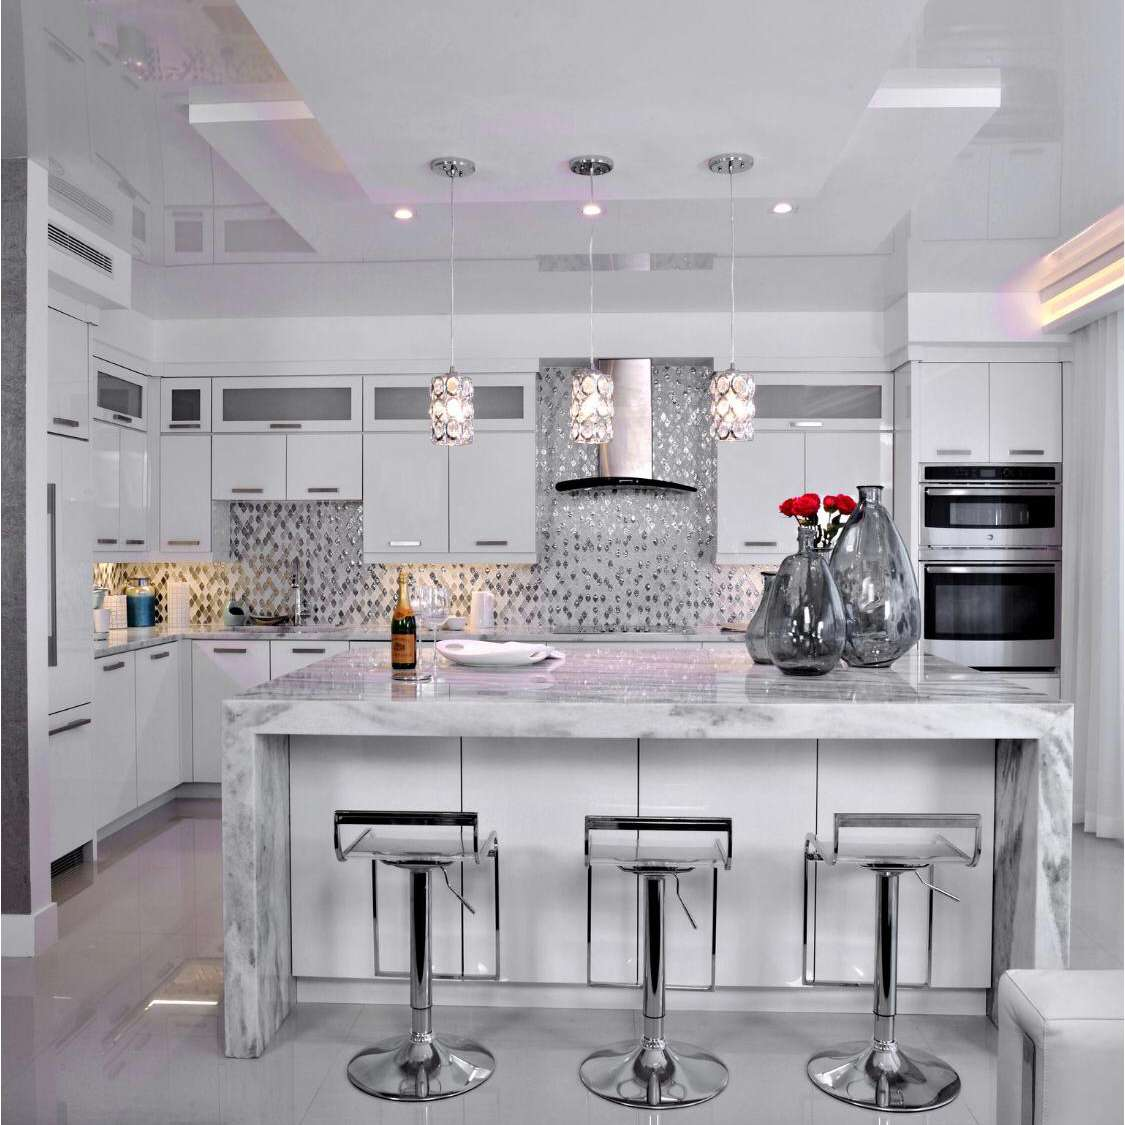 Kitchen with LED and under-cabinet lighting